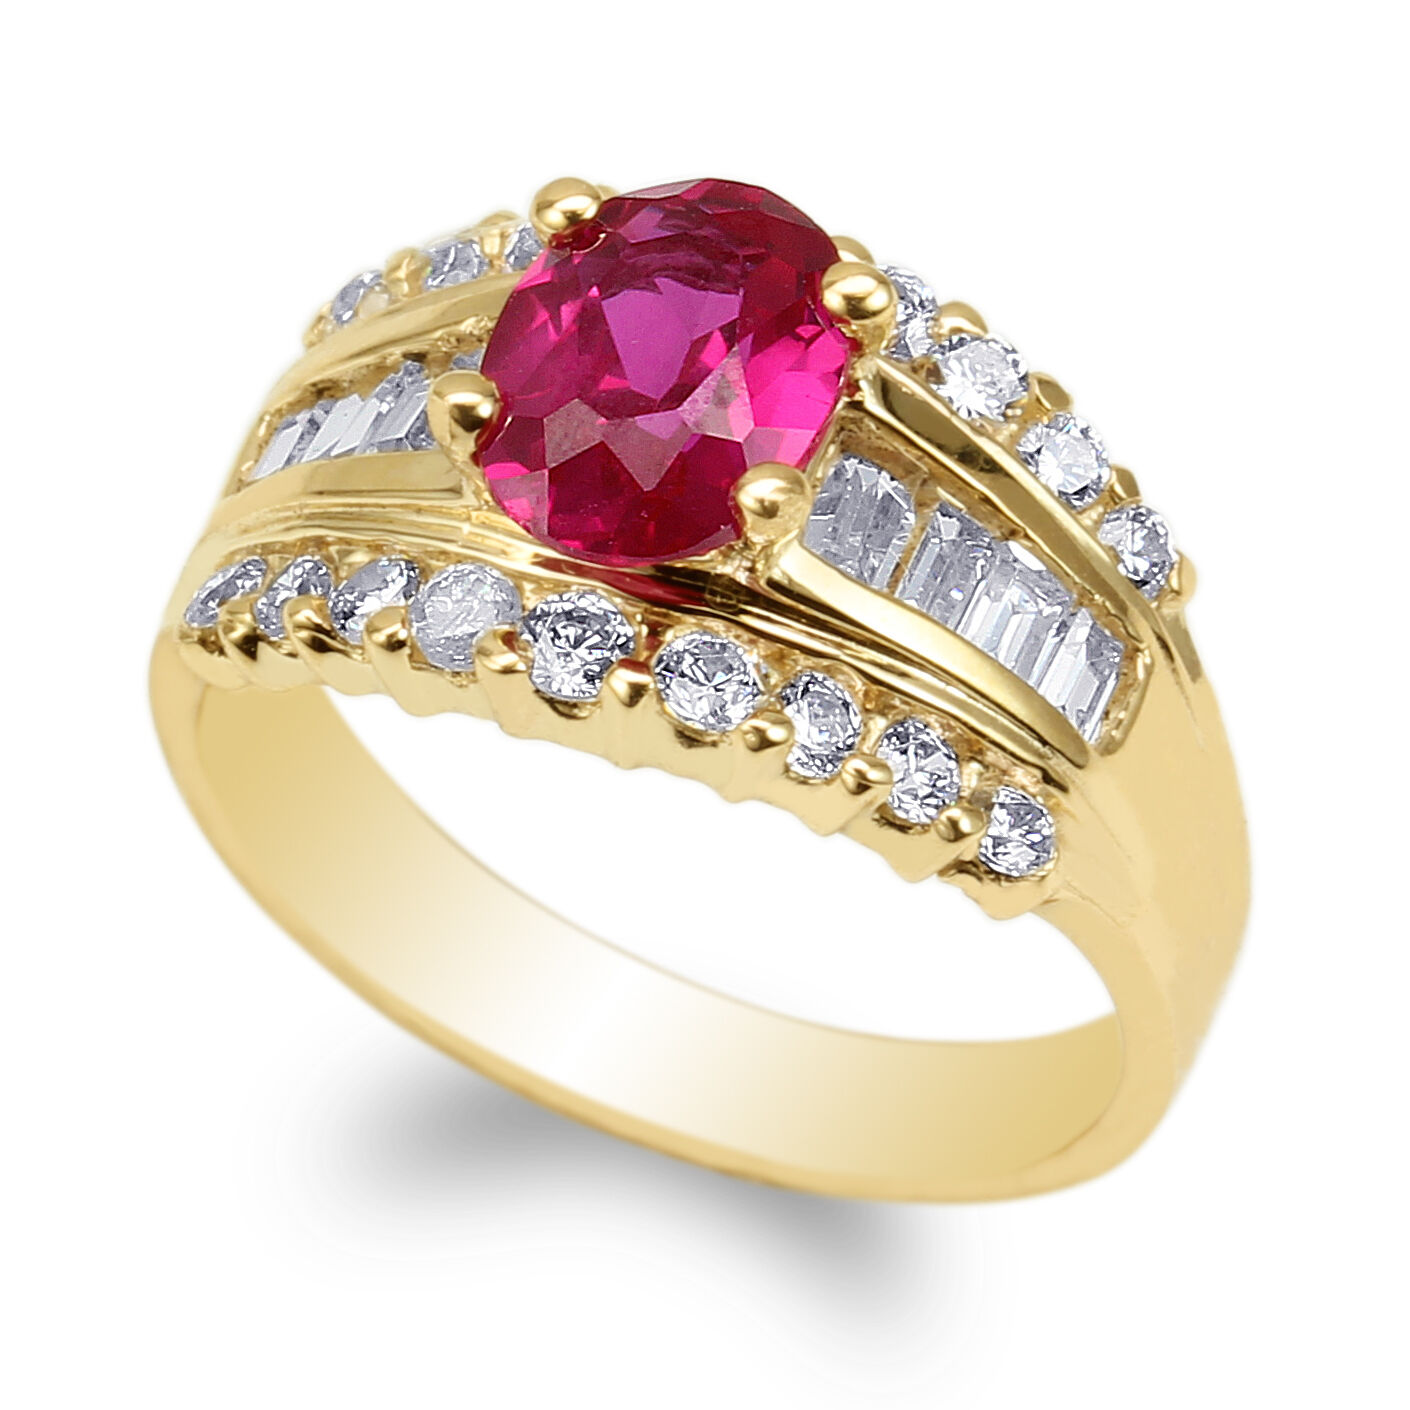 JamesJenny 14K Yellow gold 1.25ct Oval Ruby Cubic Zirconia Fancy Ring Size 4-9